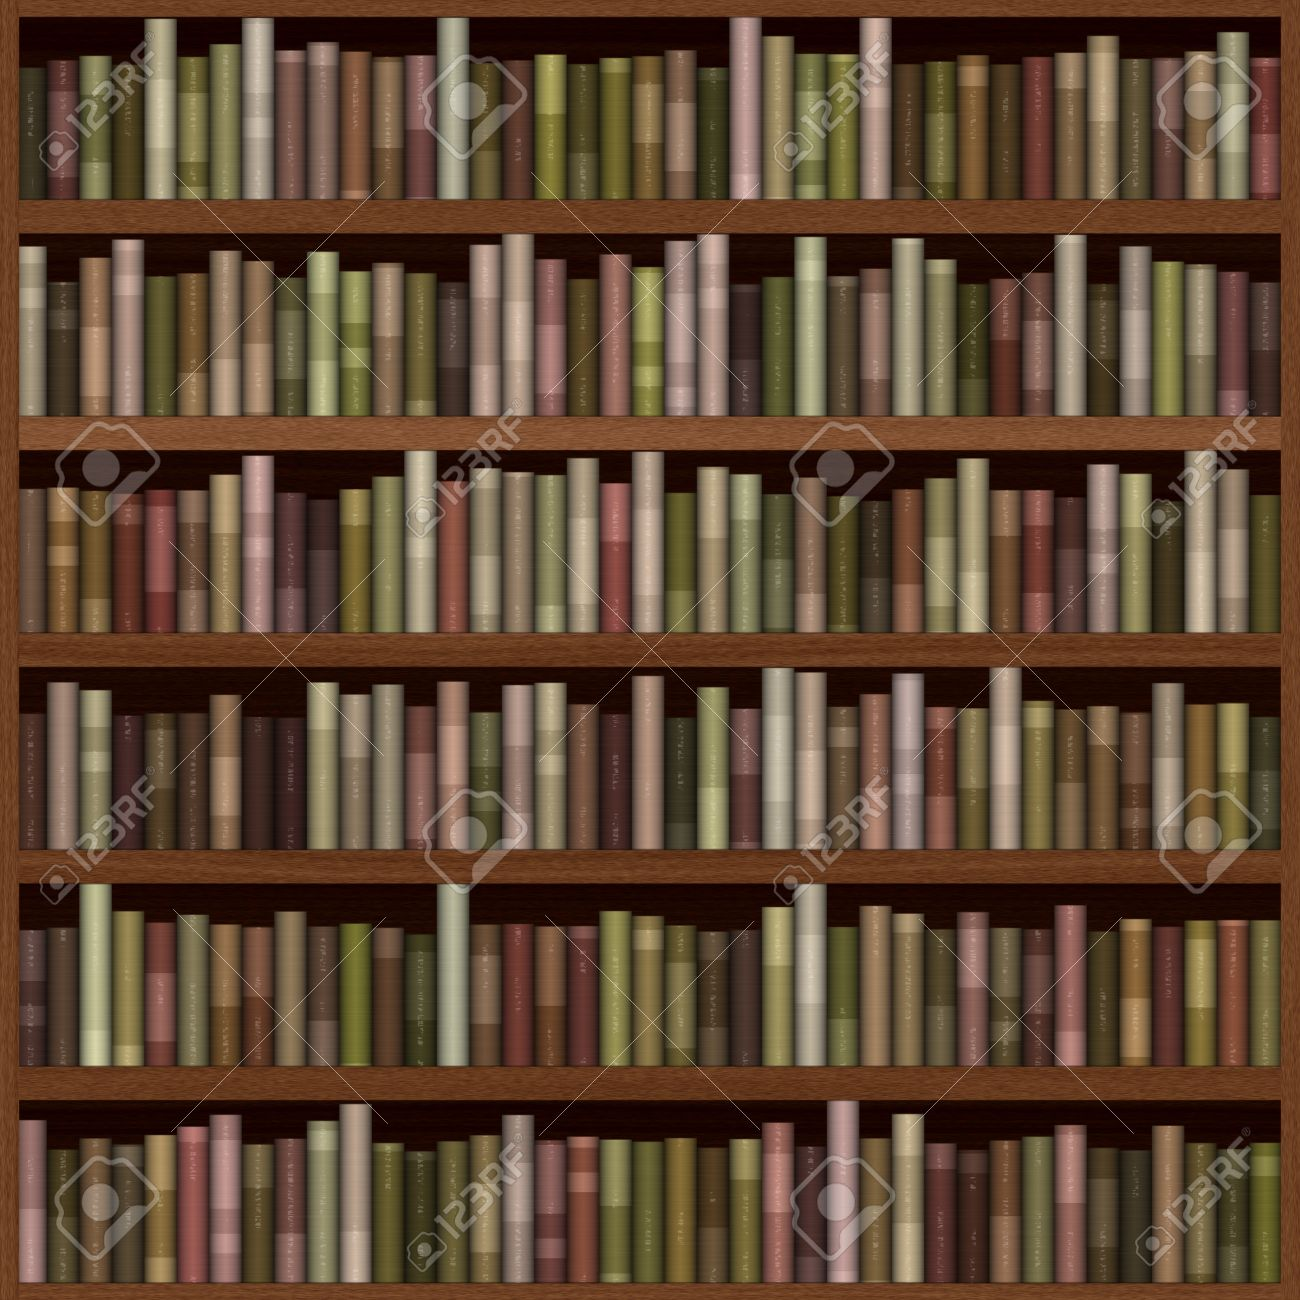 Bookshelf Generated Hires Texture Stock Photo